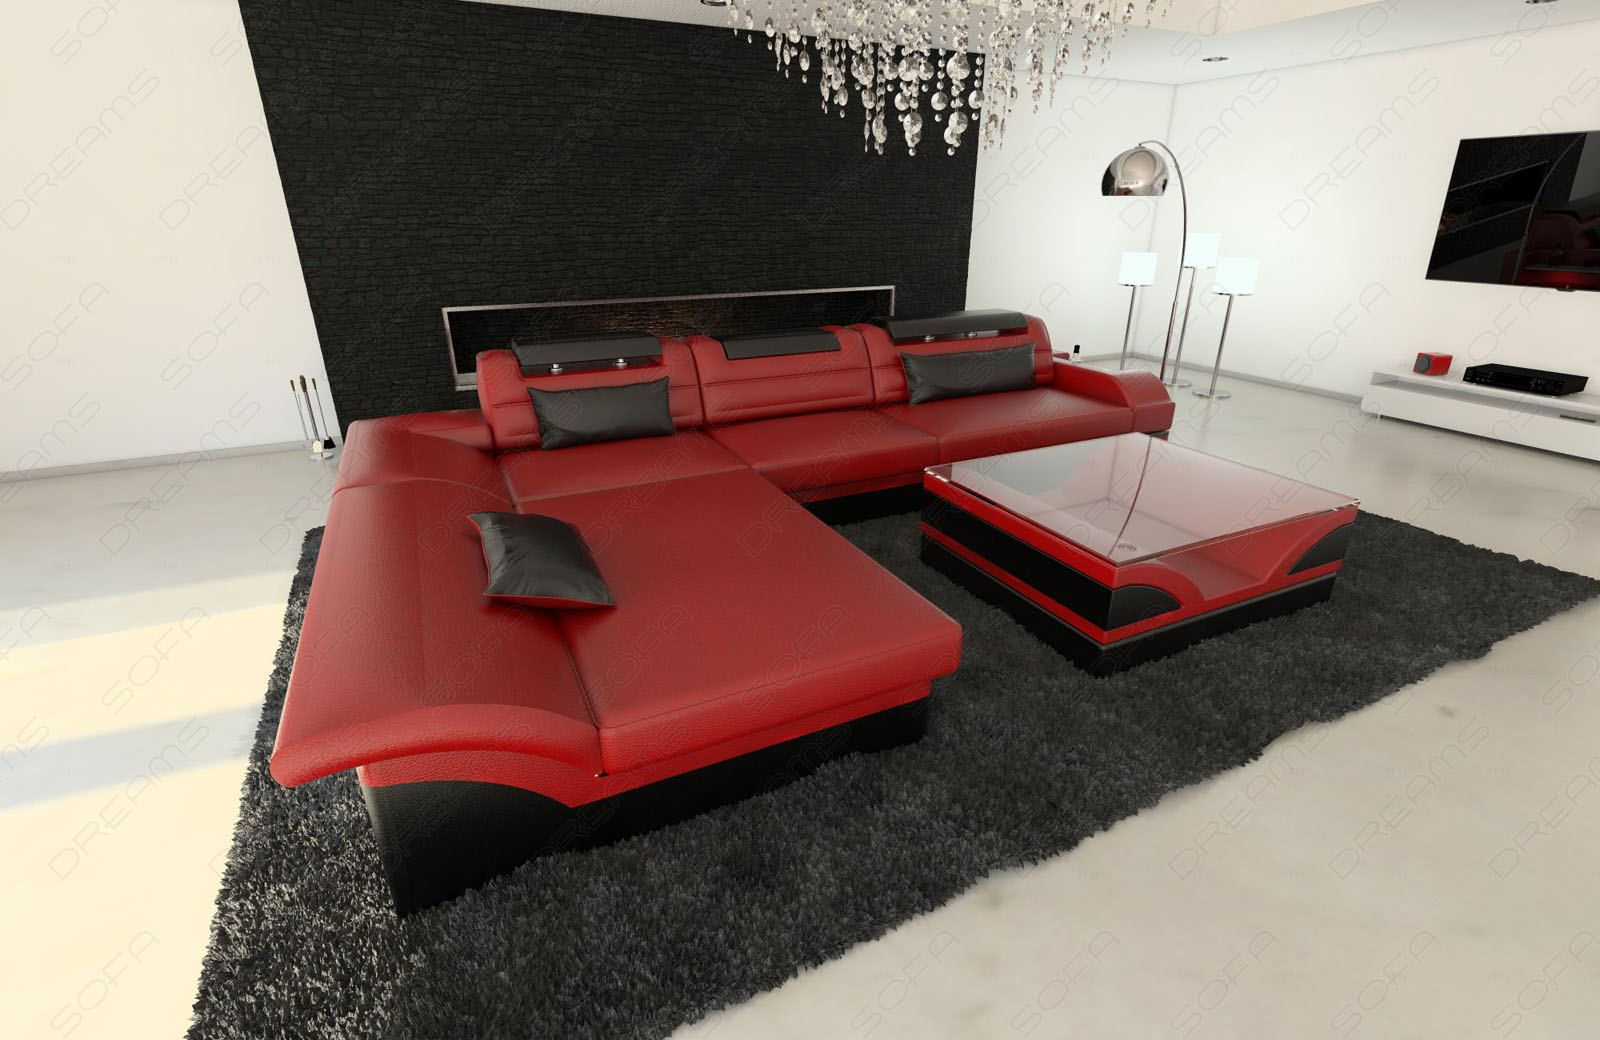 Ledersofa Rot Sofa Rot Free Tom Tailor Sofa Wohnzimmer Eckcouch Switch Ecksofa